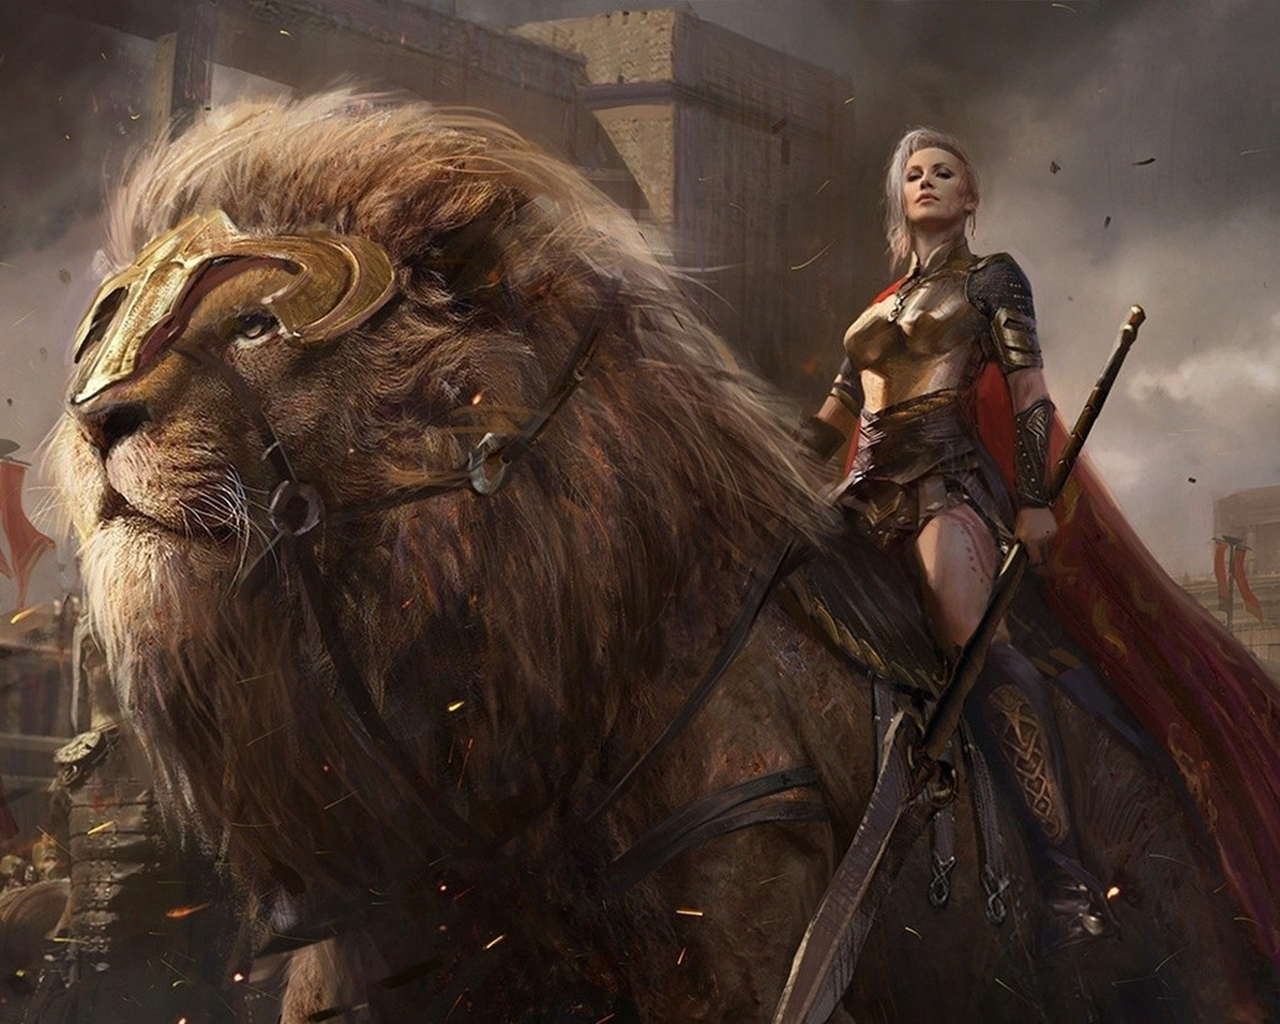 swords, weapons, lion, army, blades, giant lion, conquerors, power, ken, sovereign, shield, spears, men